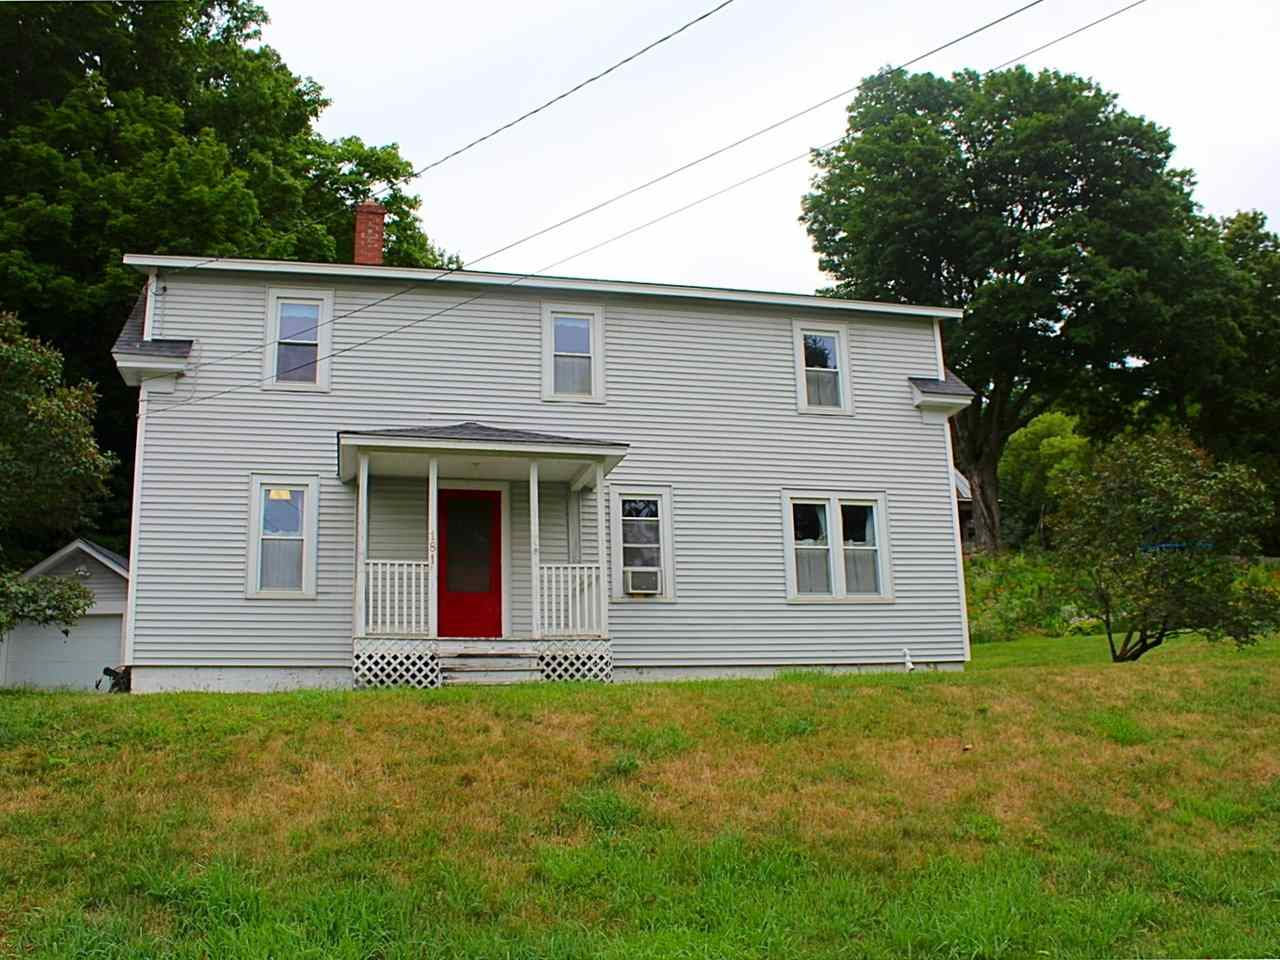 Sold property in St. Albans City